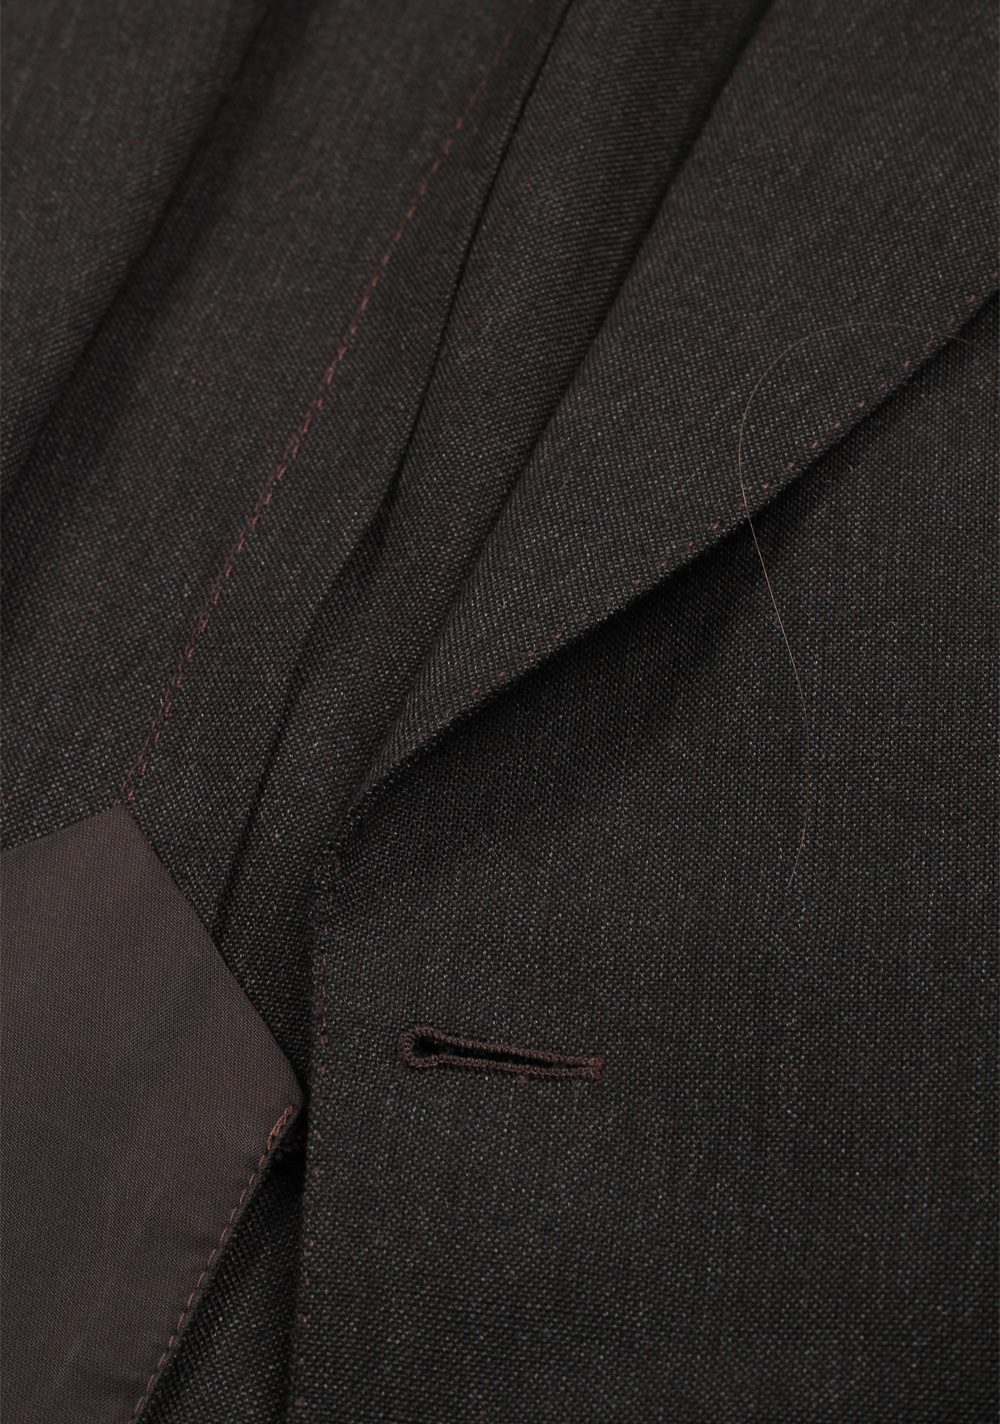 TOM FORD Shelton Brown Suit Size 48 / 38R U.S. In Mohair Wool Silk | Costume Limité